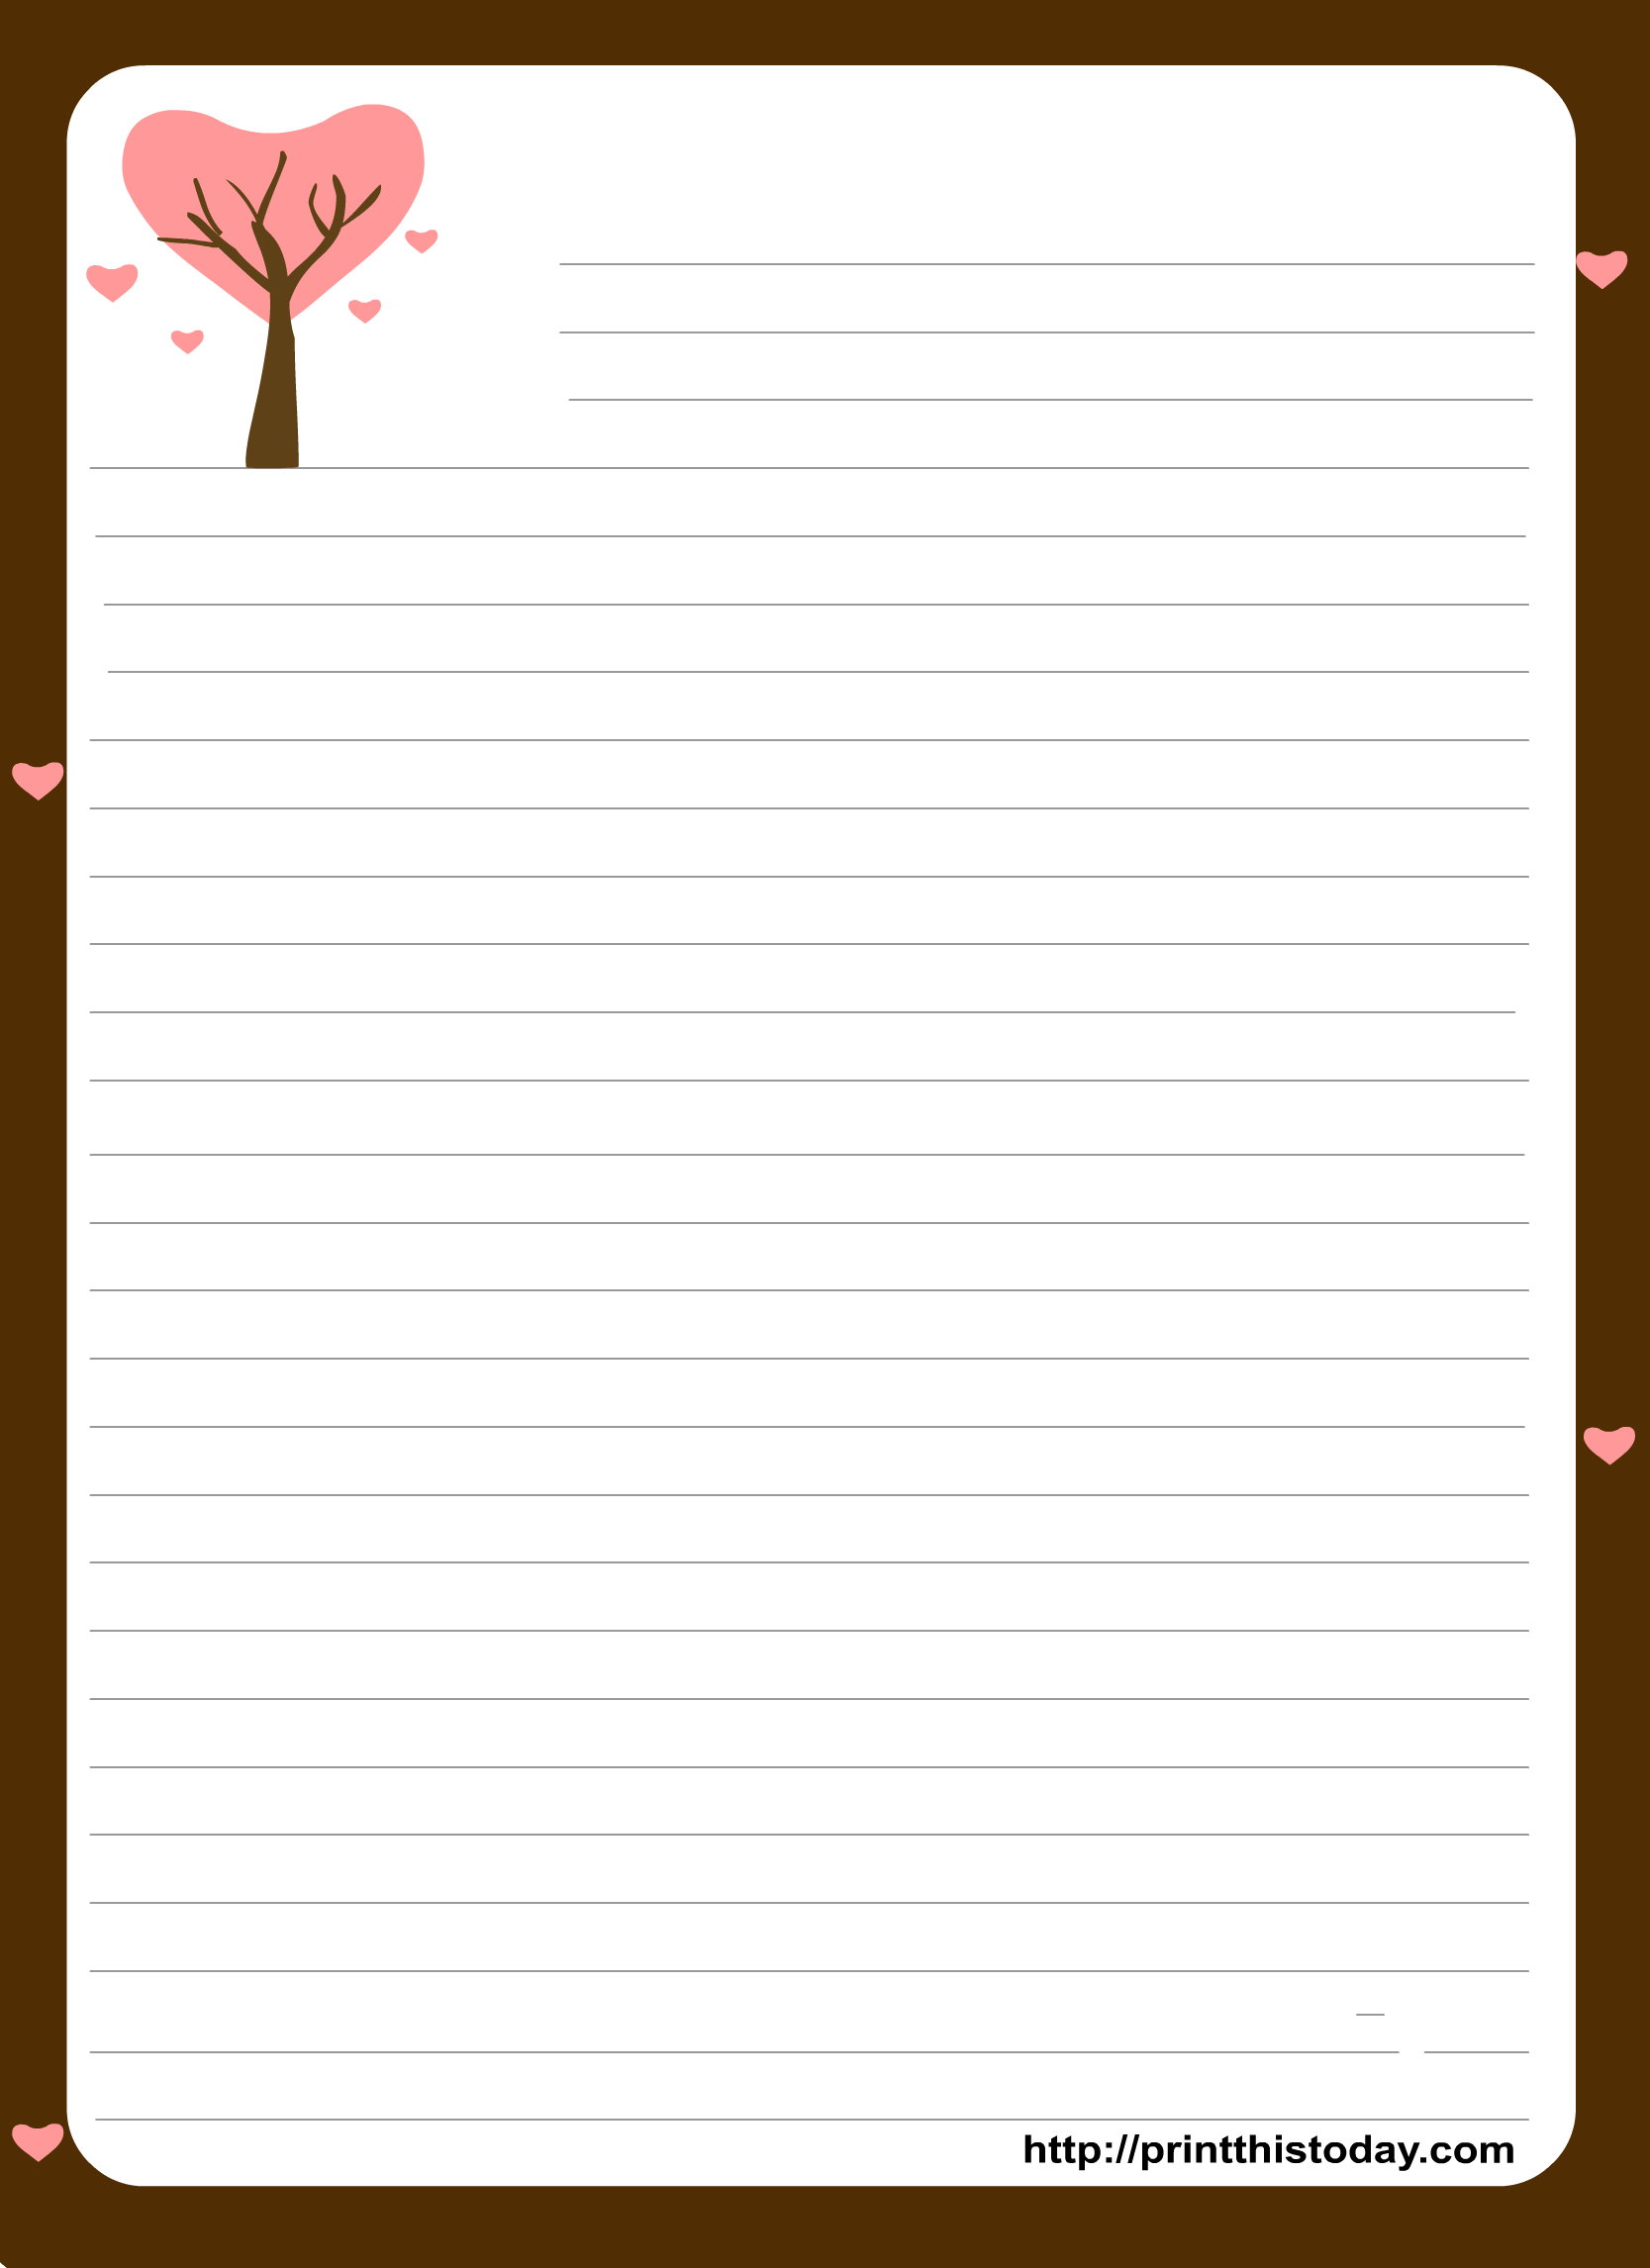 Free Printable Stationery Paper | Free Printable Stationary With - Free Printable Stationery Templates For Word